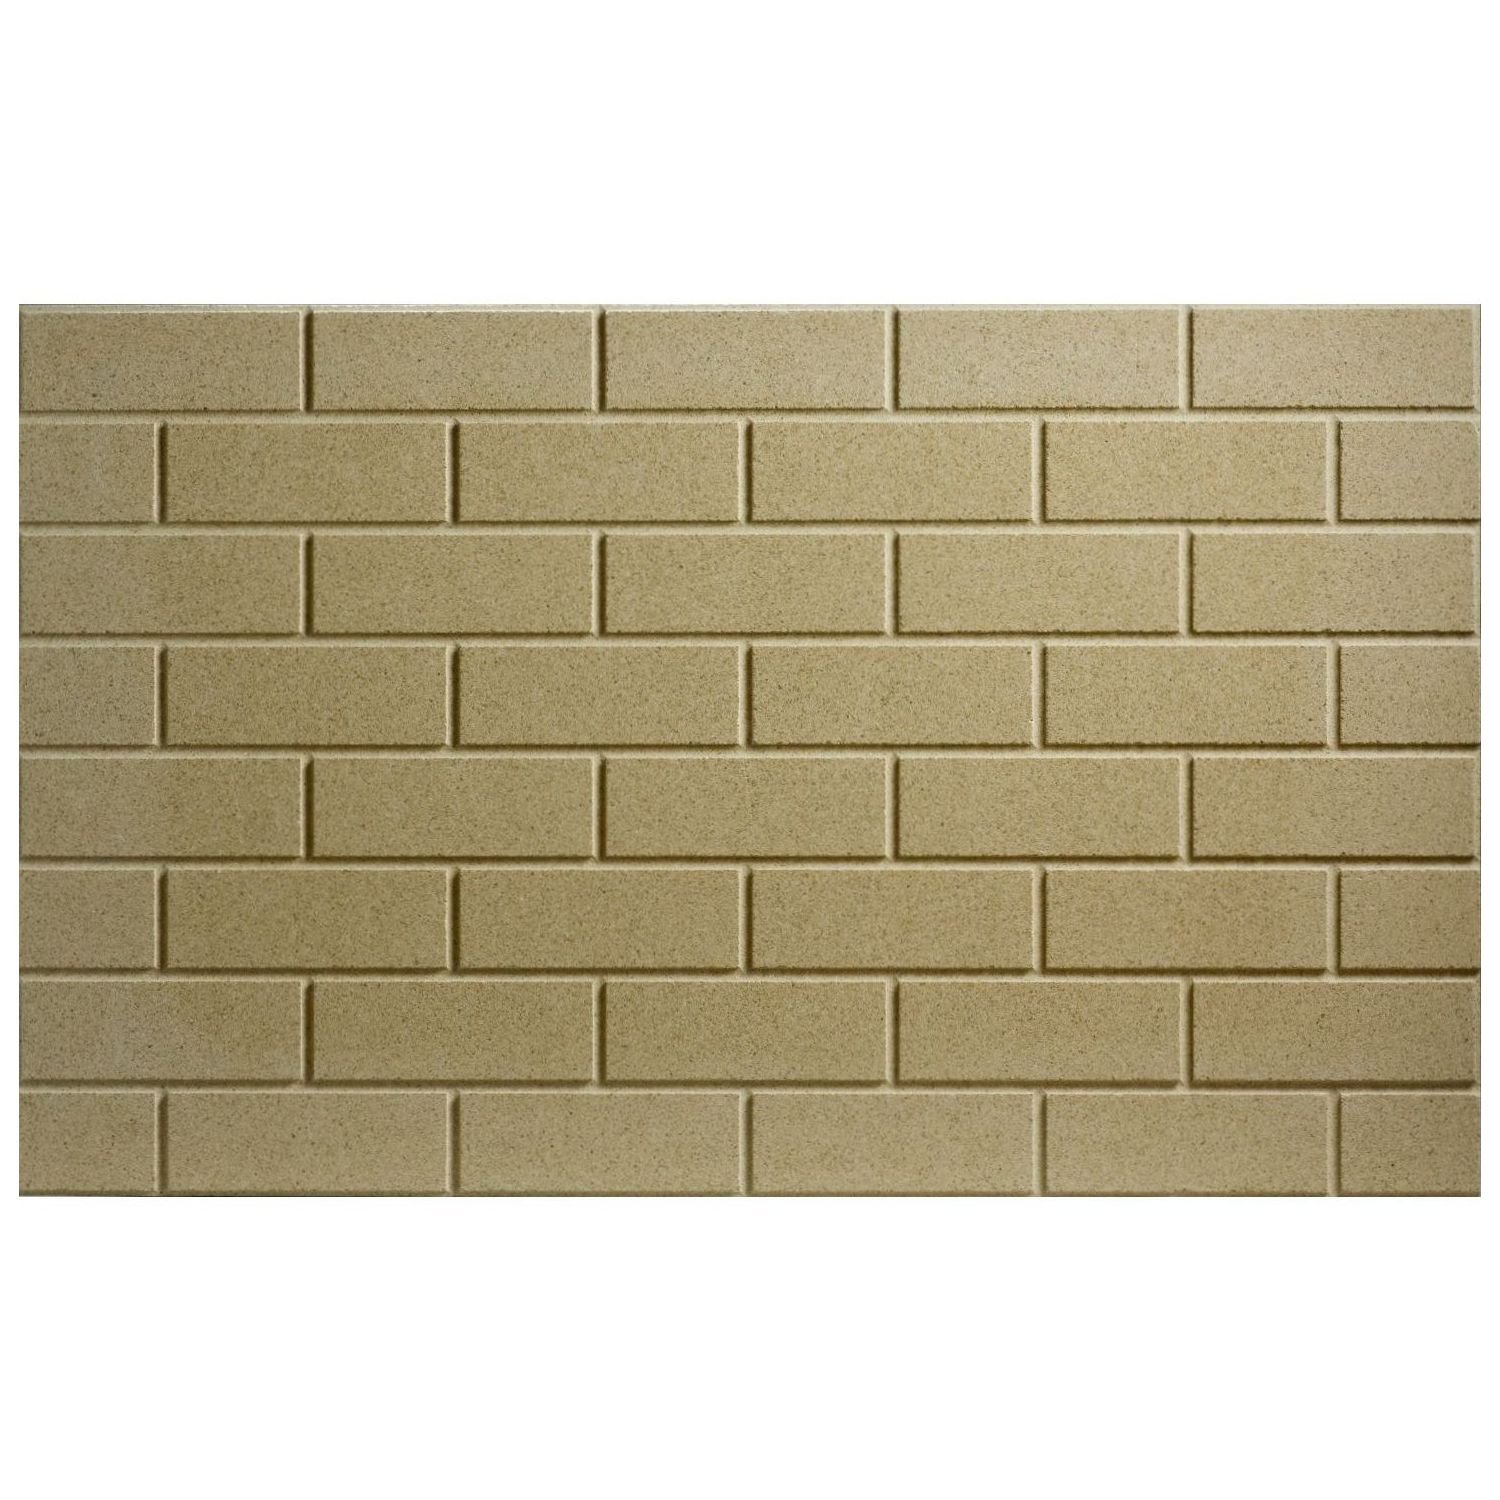 Thermax Vermiculite Refractory Panel 24 inch X 29 5/8 inch (3'' x 8'' Brick Pattern)